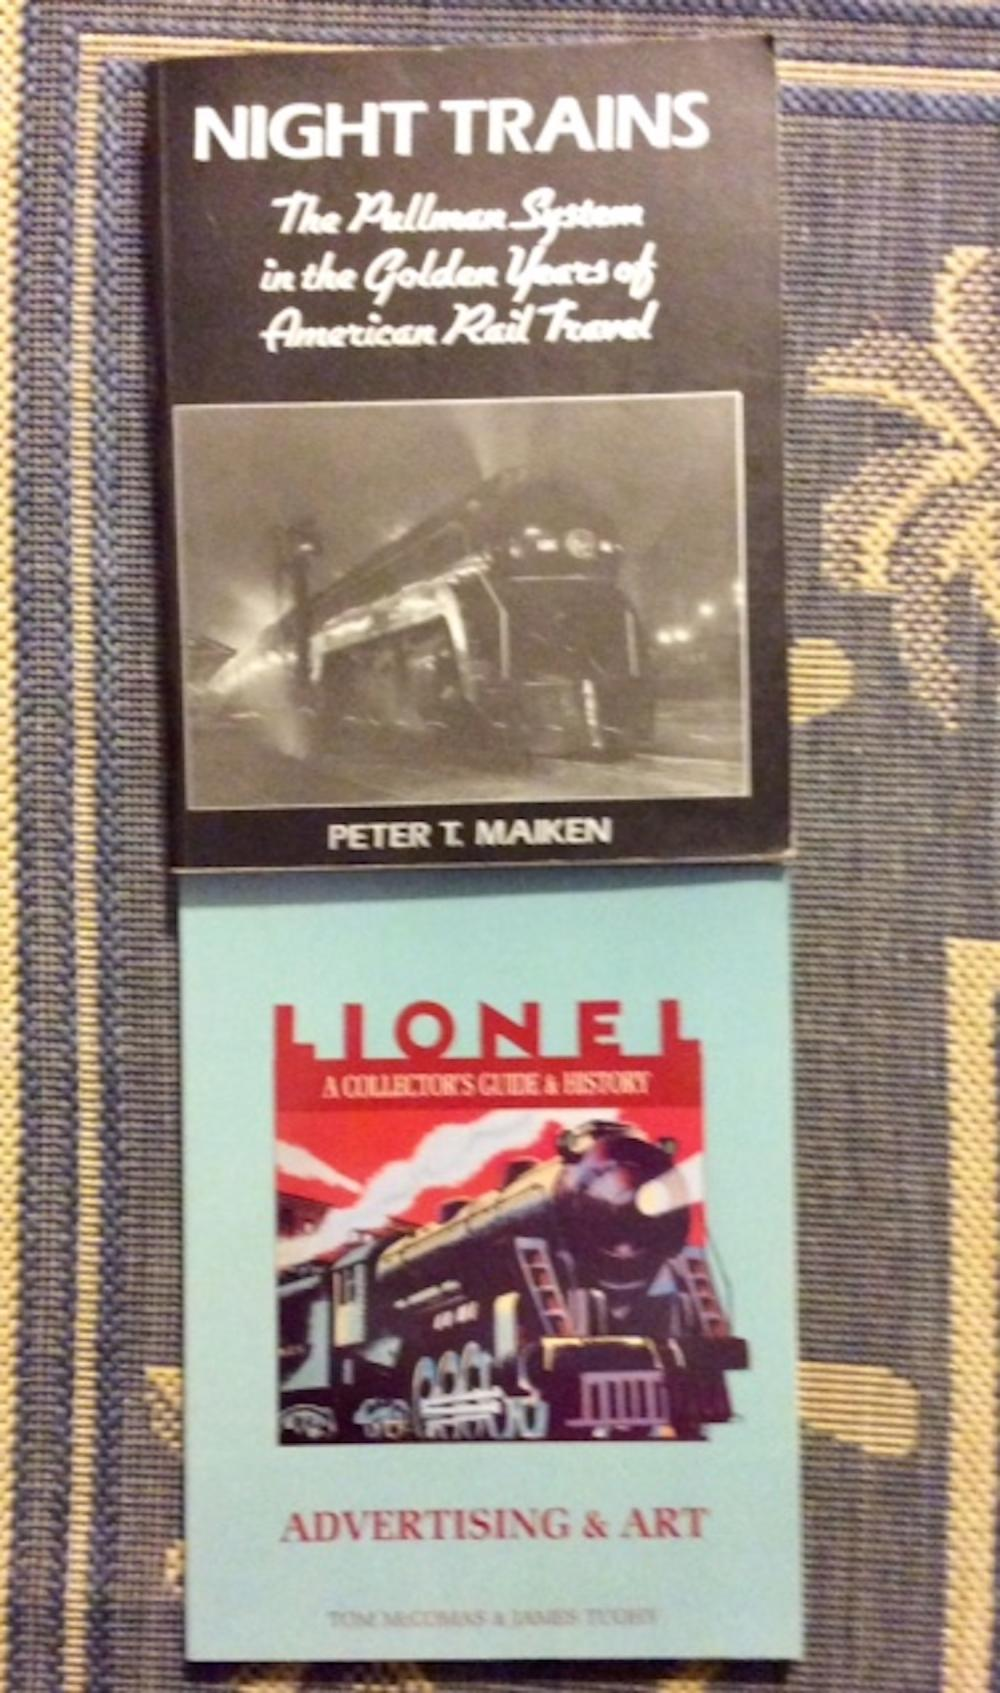 (2) Collectible Trade Paperbacks On Trains, Railroads, & Transportation